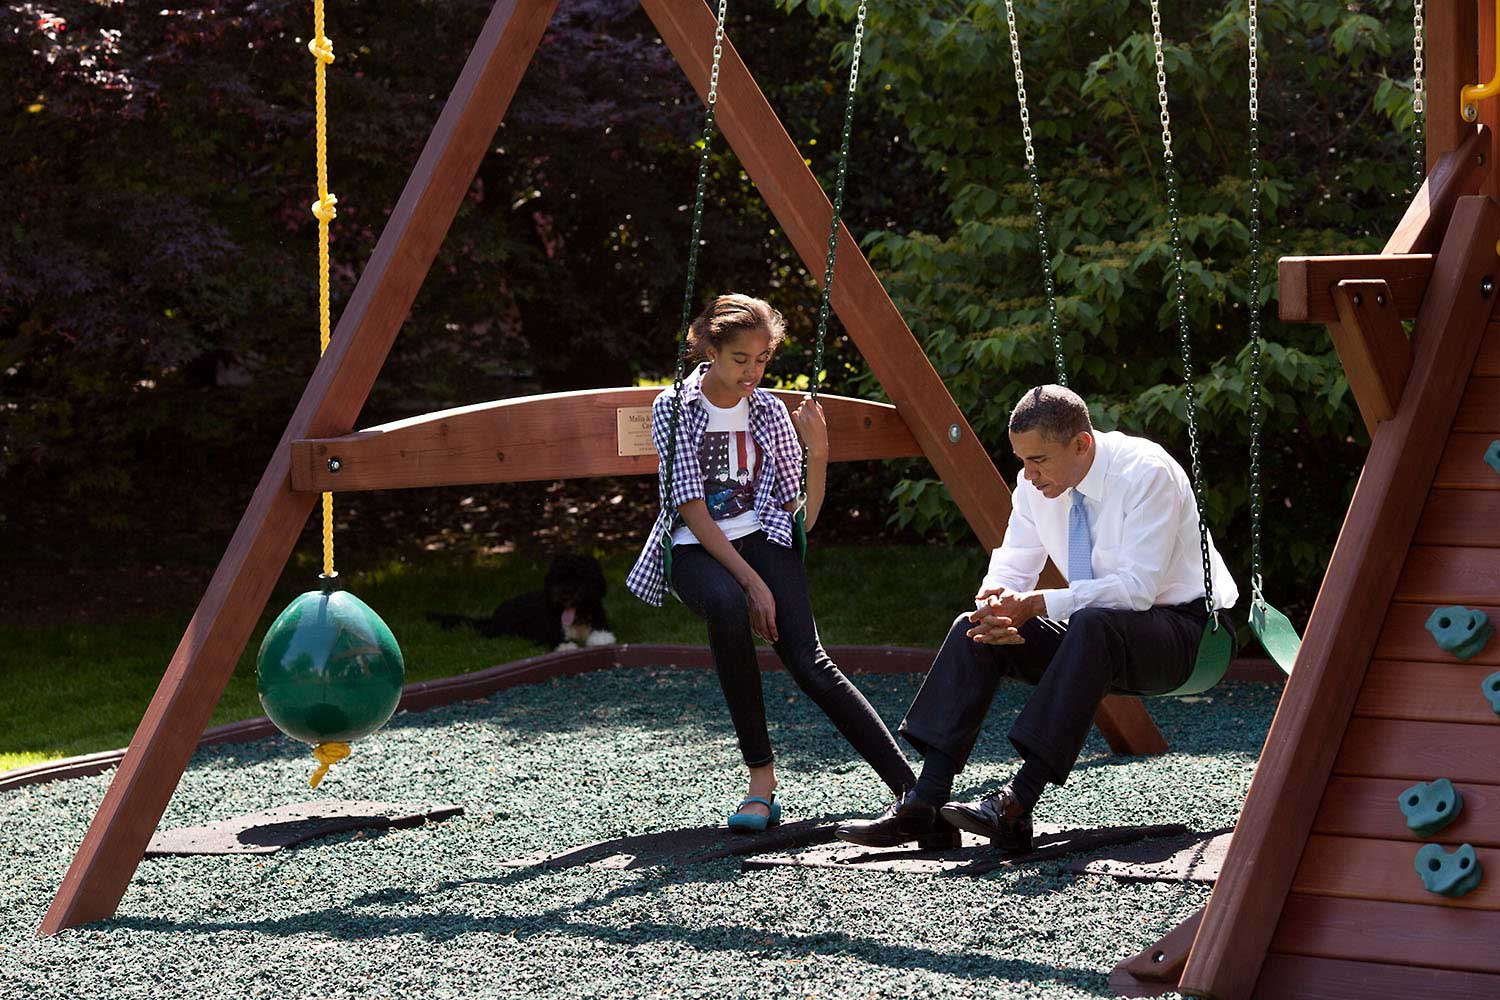 President Obama talks with his daughter Malia on the swing set outside the Oval Office, May 4, 2010.